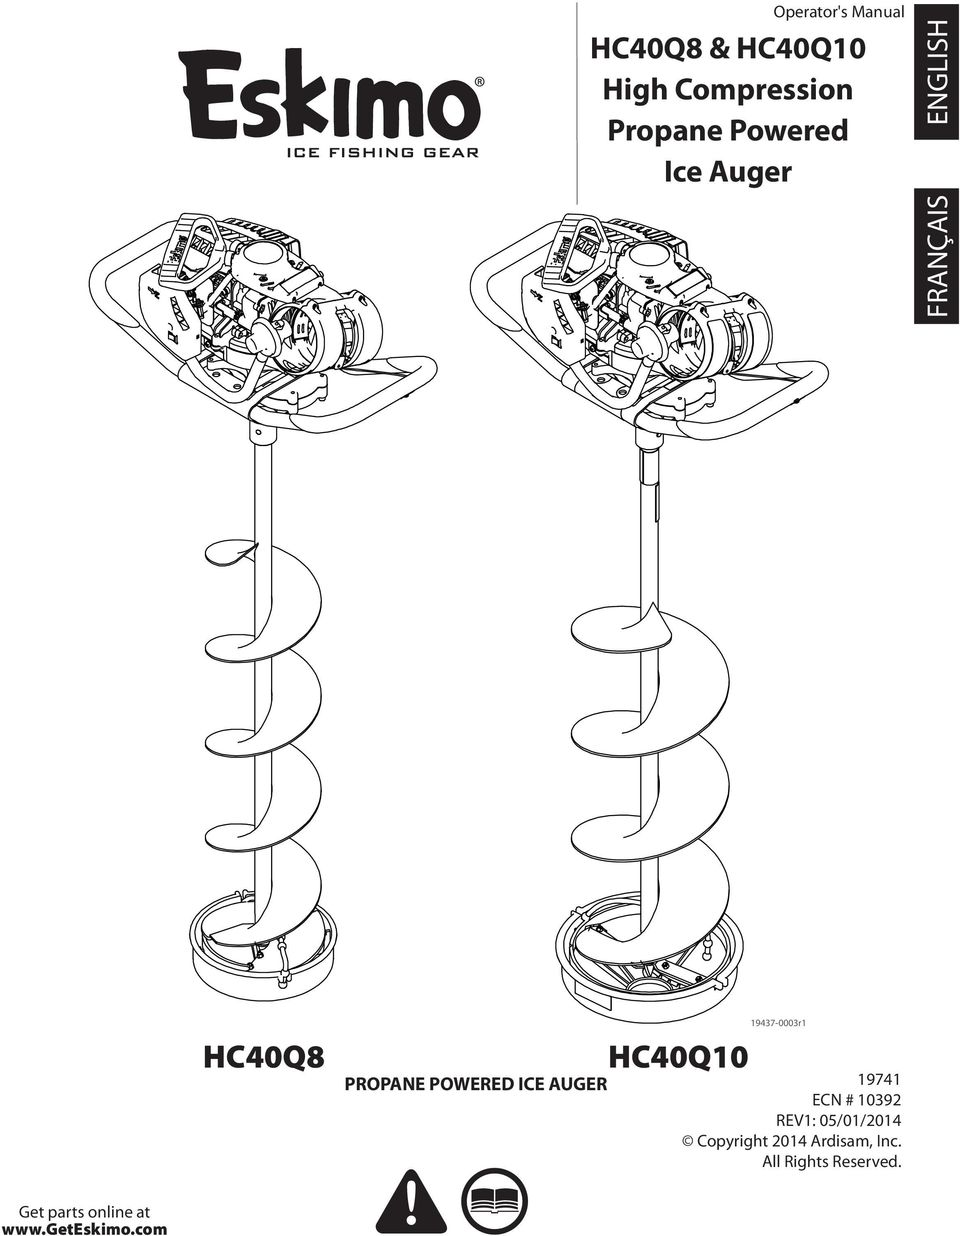 HC40Q8 & HC40Q10 High Compression Propane Powered Ice Auger